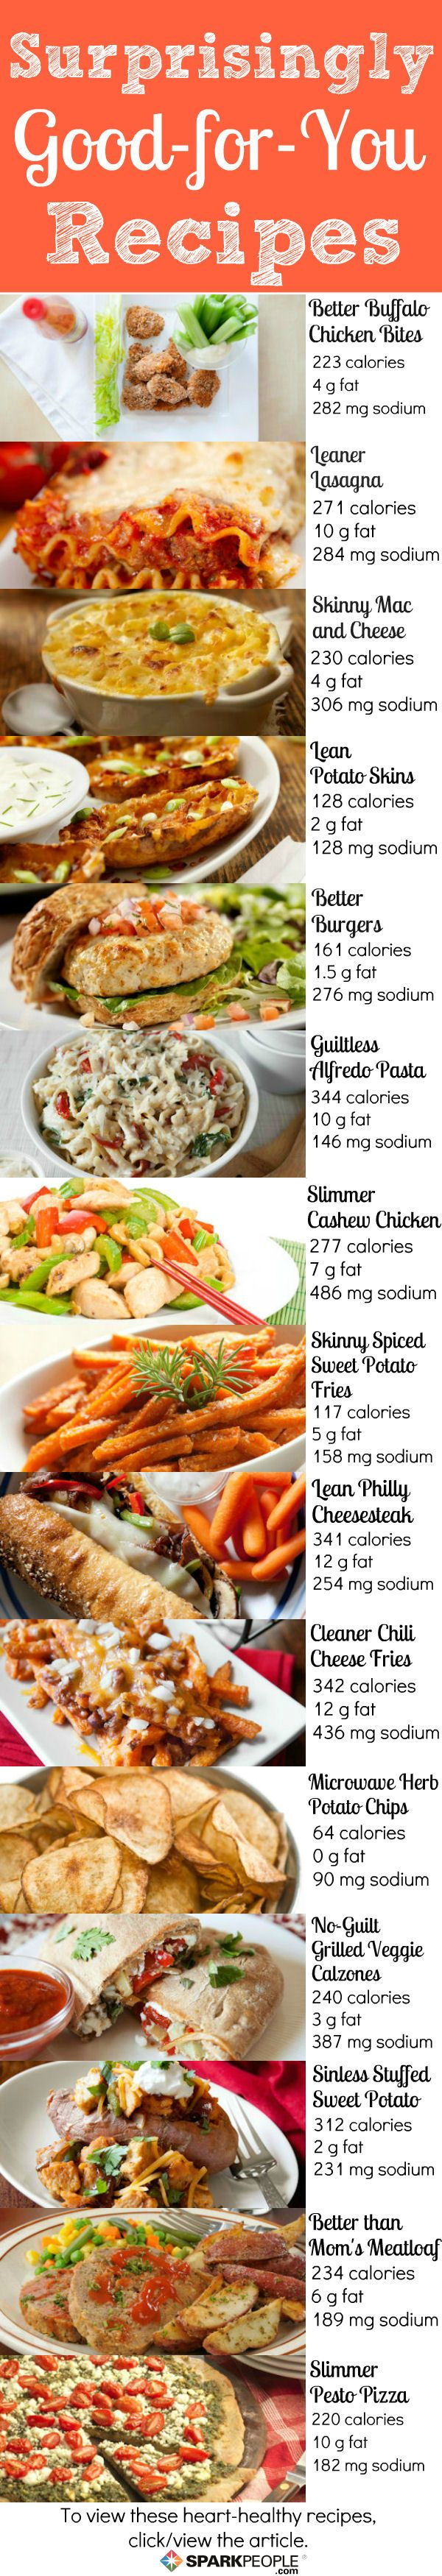 37 best heart healthy images on pinterest cooking recipes recipes heart healthy comfort food swaps forumfinder Choice Image